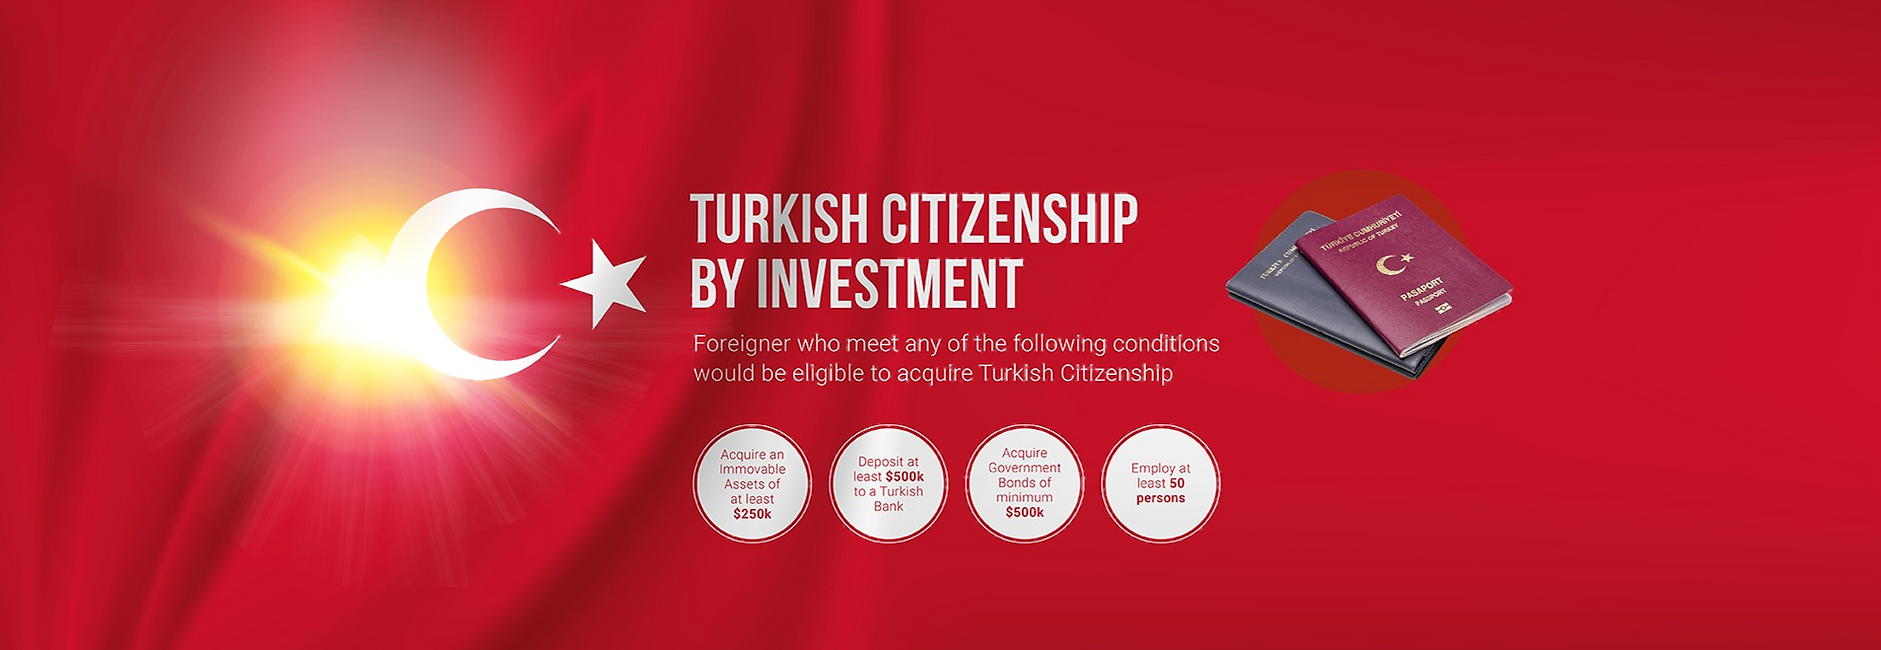 invest%20turkish%20citizenship_edited.pn